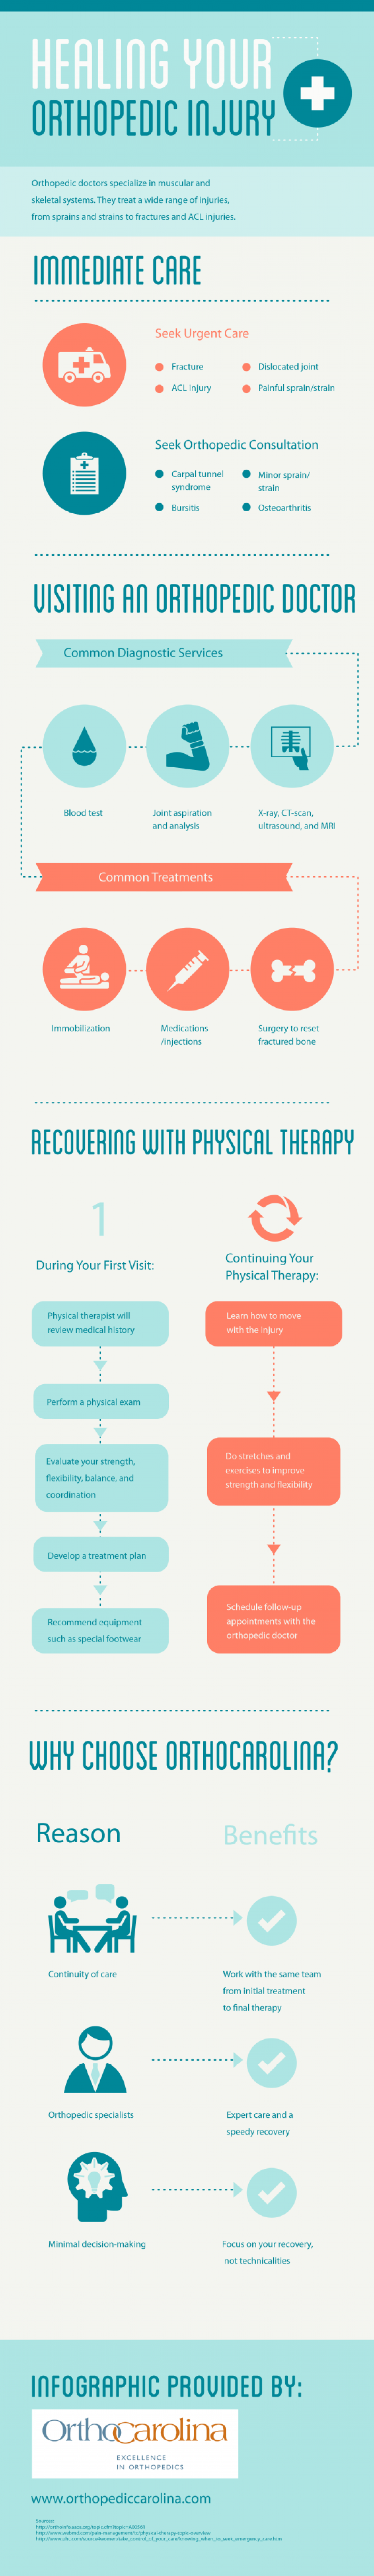 Healing Your Orthopedic Injury Infographic